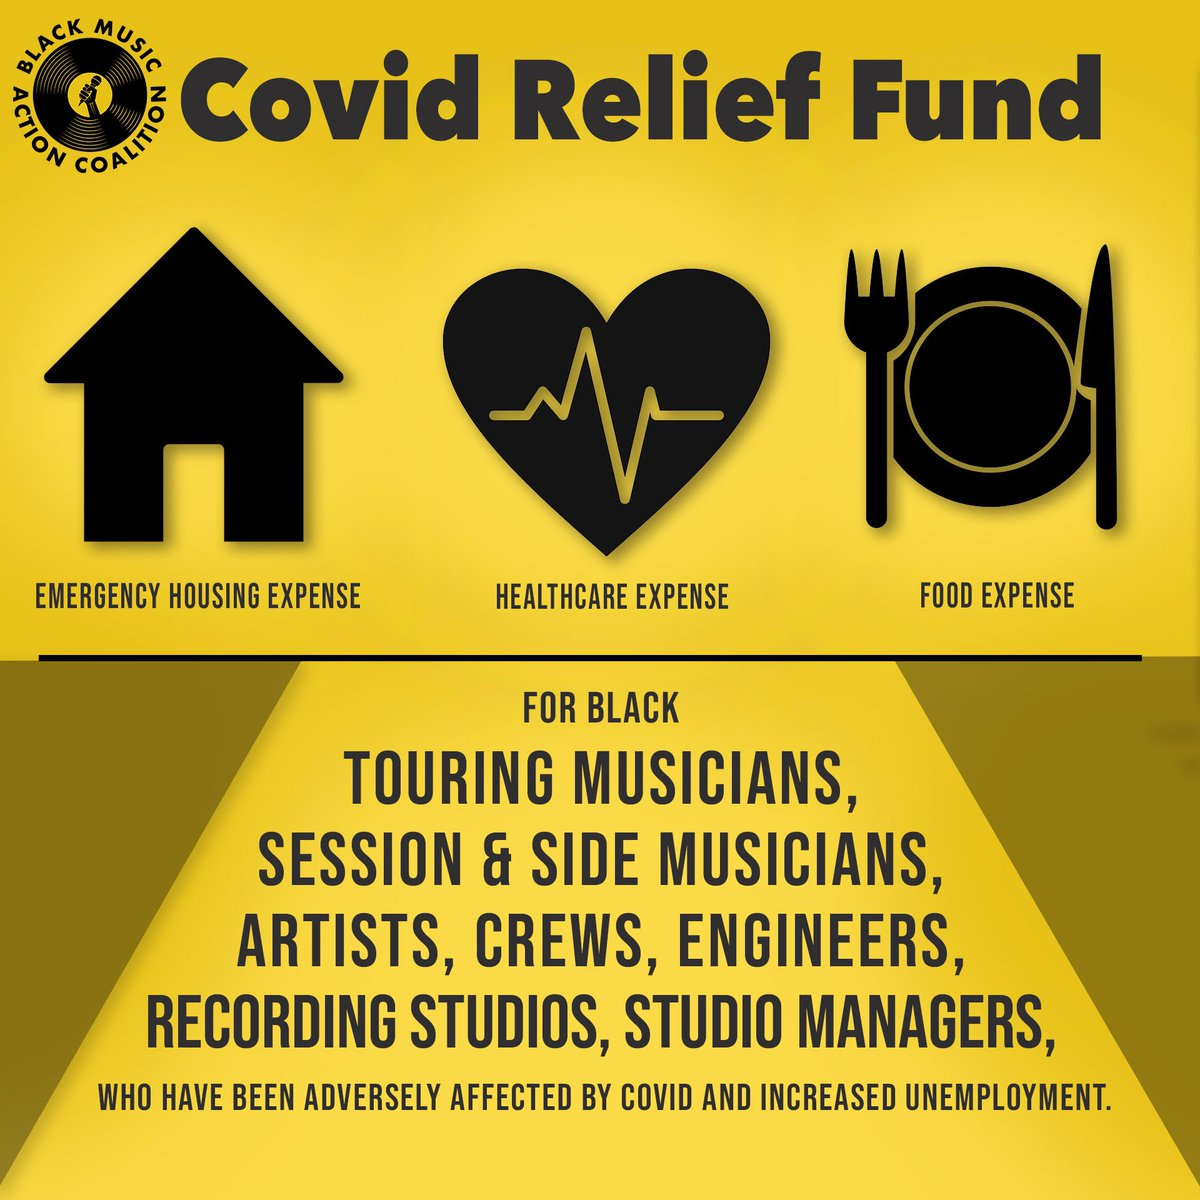 BMAC has launched our COVID RELIEF FUND‼️ This money is for direct support for our brothers and sisters in the industry who cannot live on a one time $600 check. Applications found here: